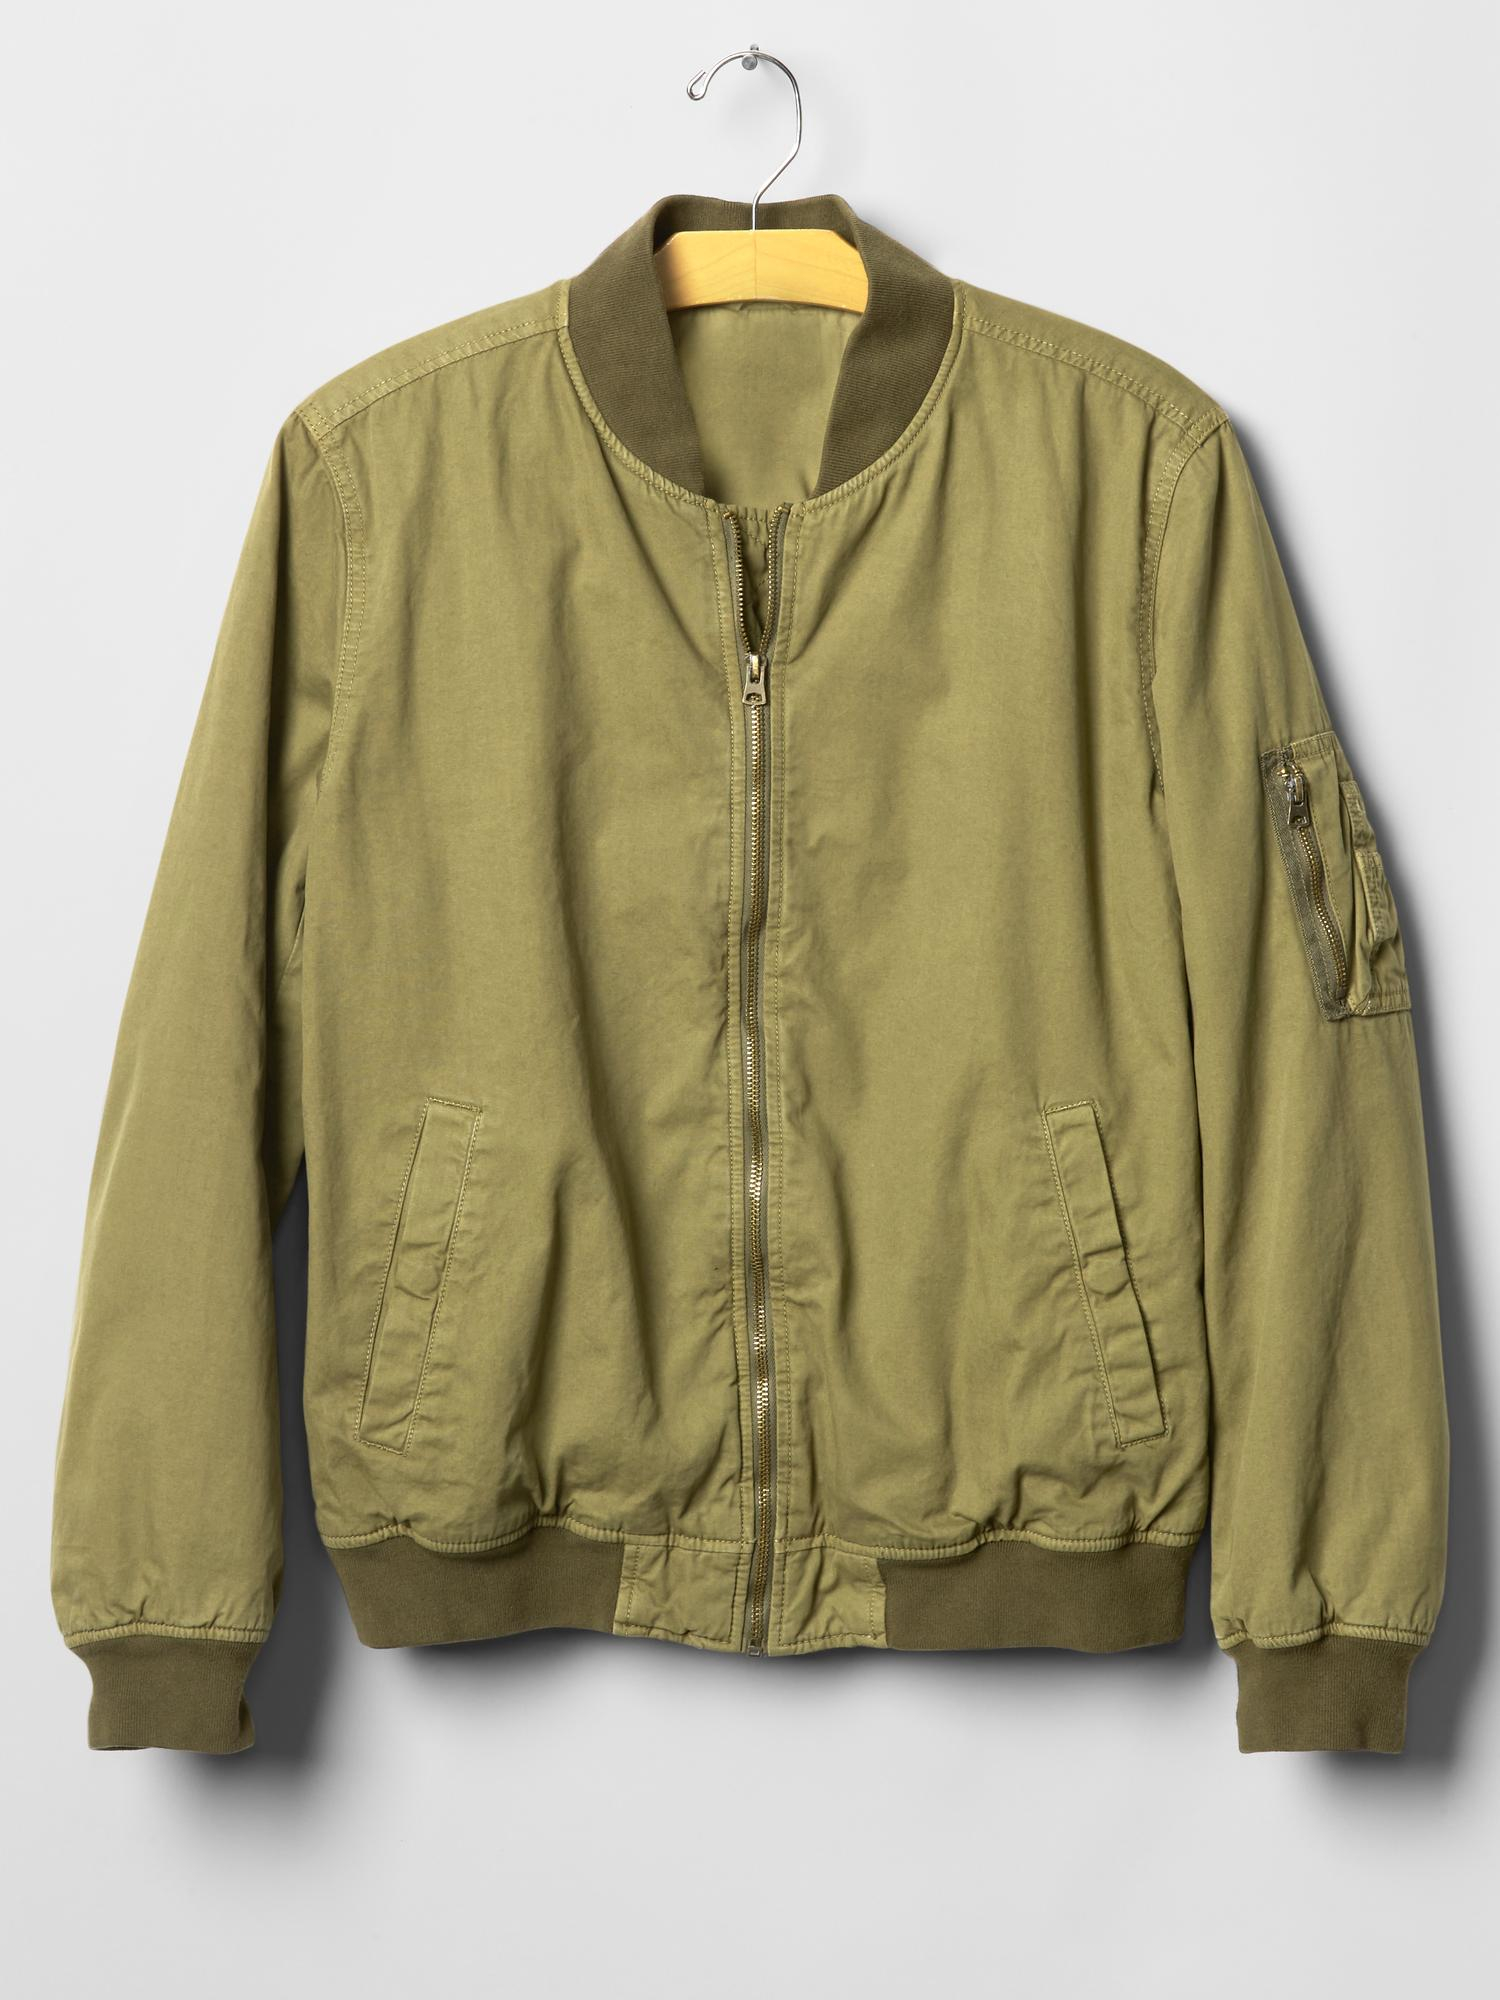 Gap jacket women